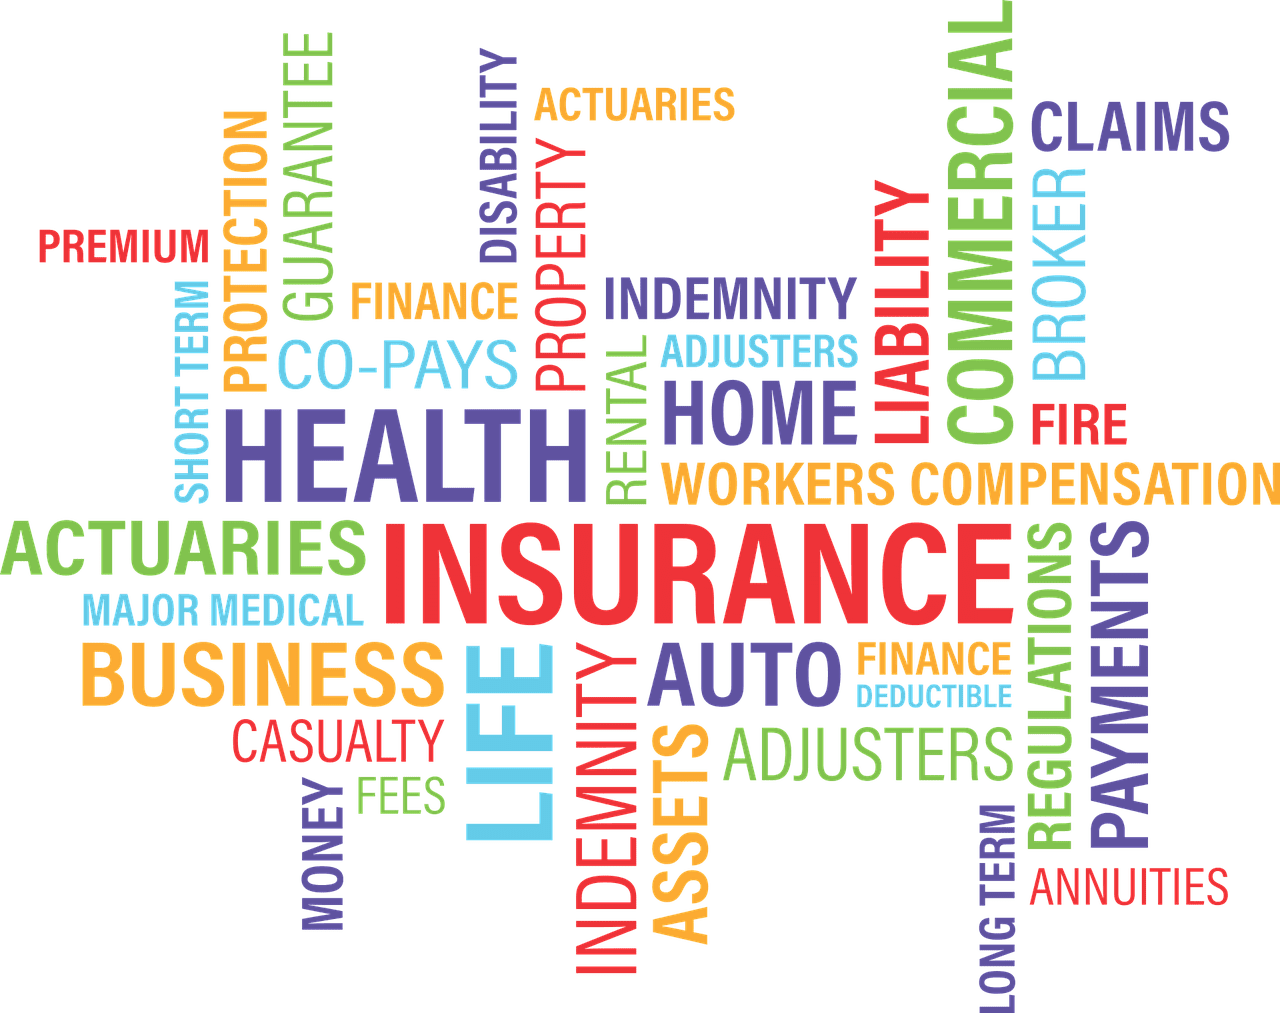 10 Best Life Insurance Companies in India 2020 : Top 10 List